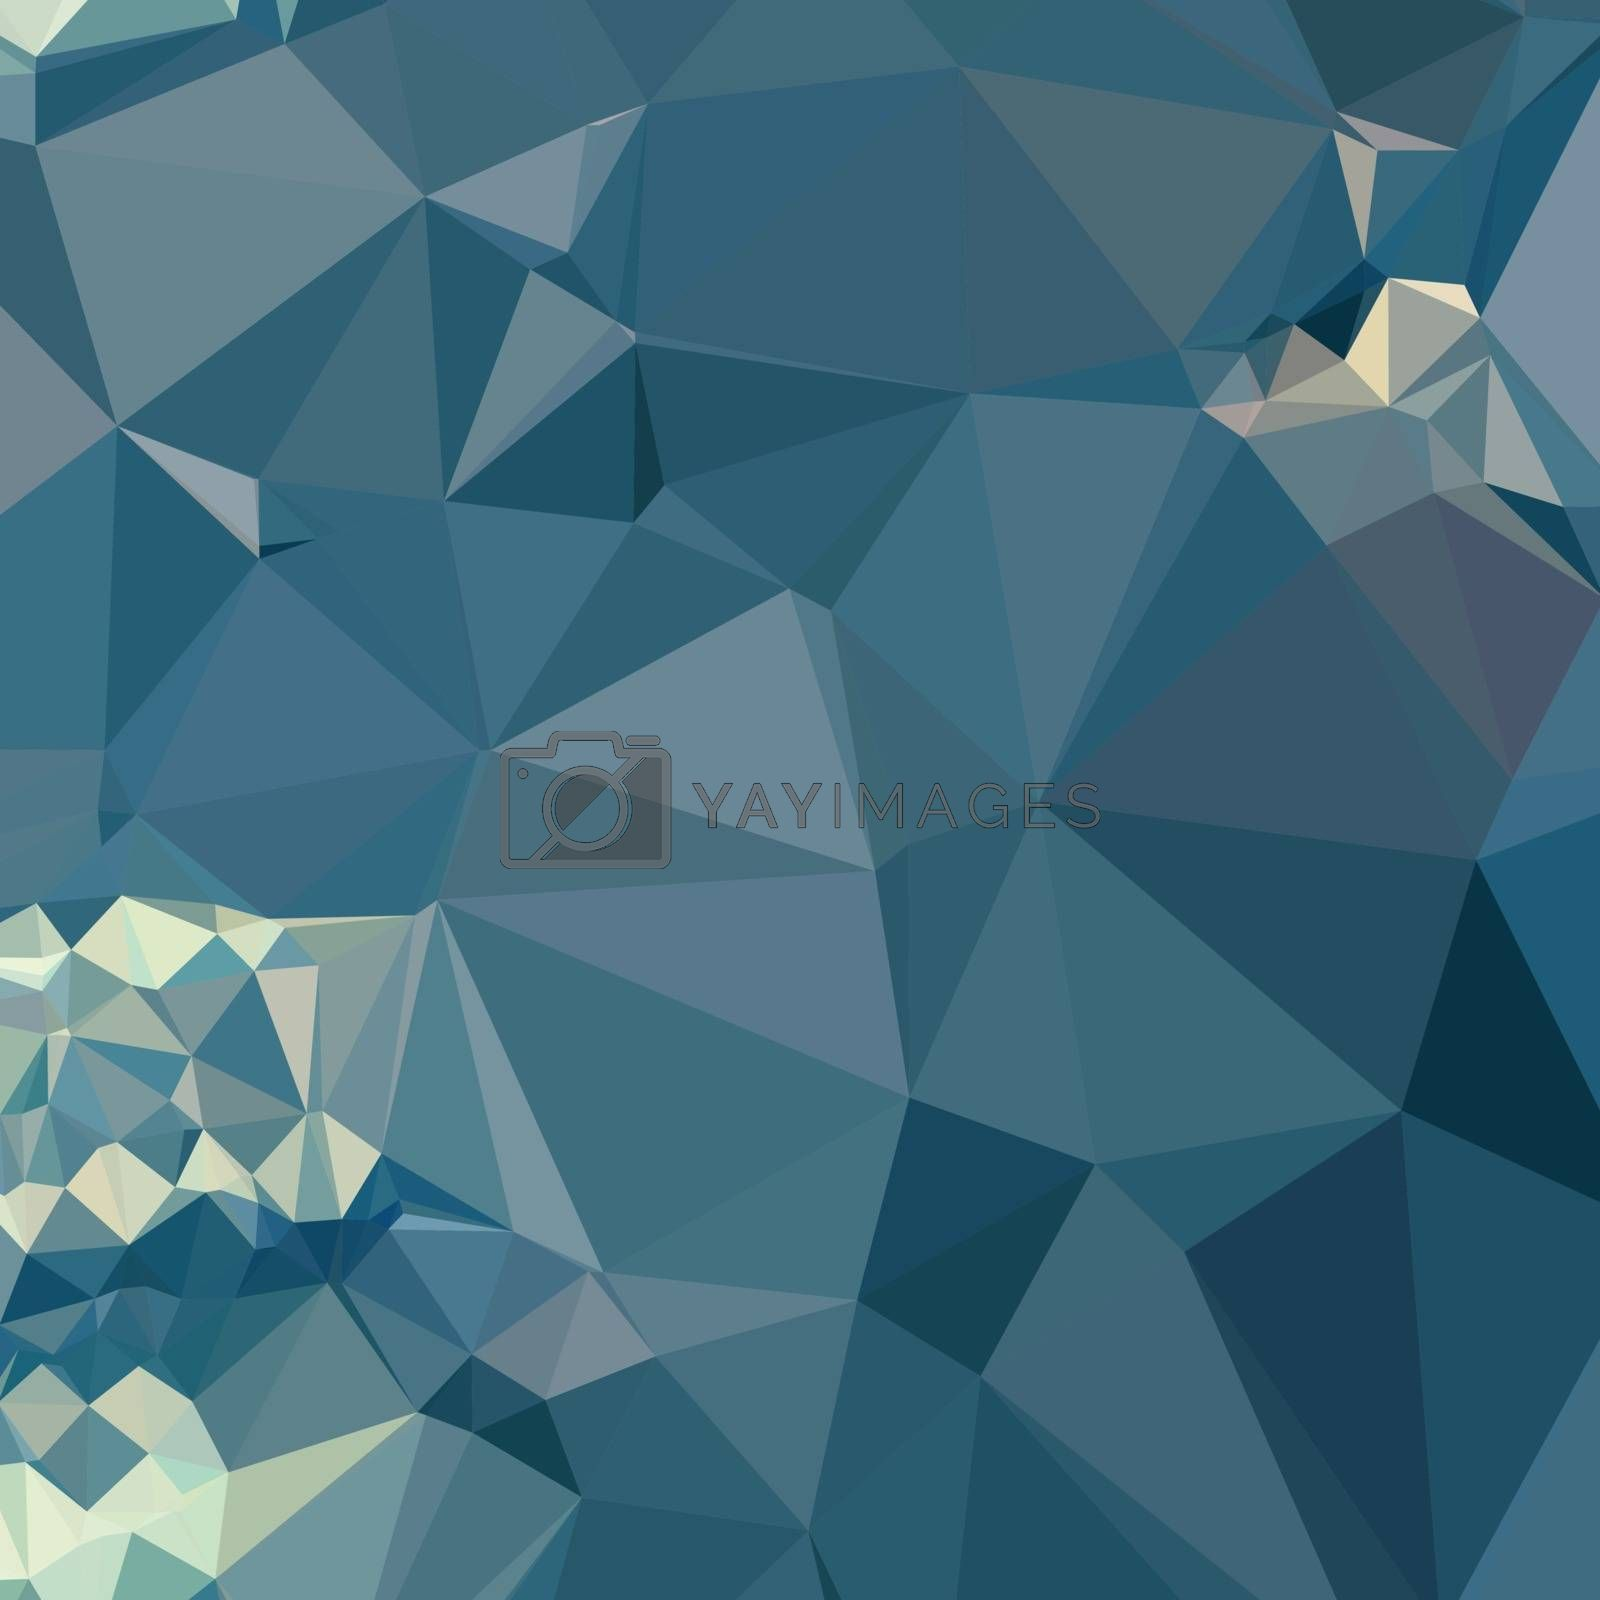 Low polygon style illustration of a cadet blue abstract geometric background.